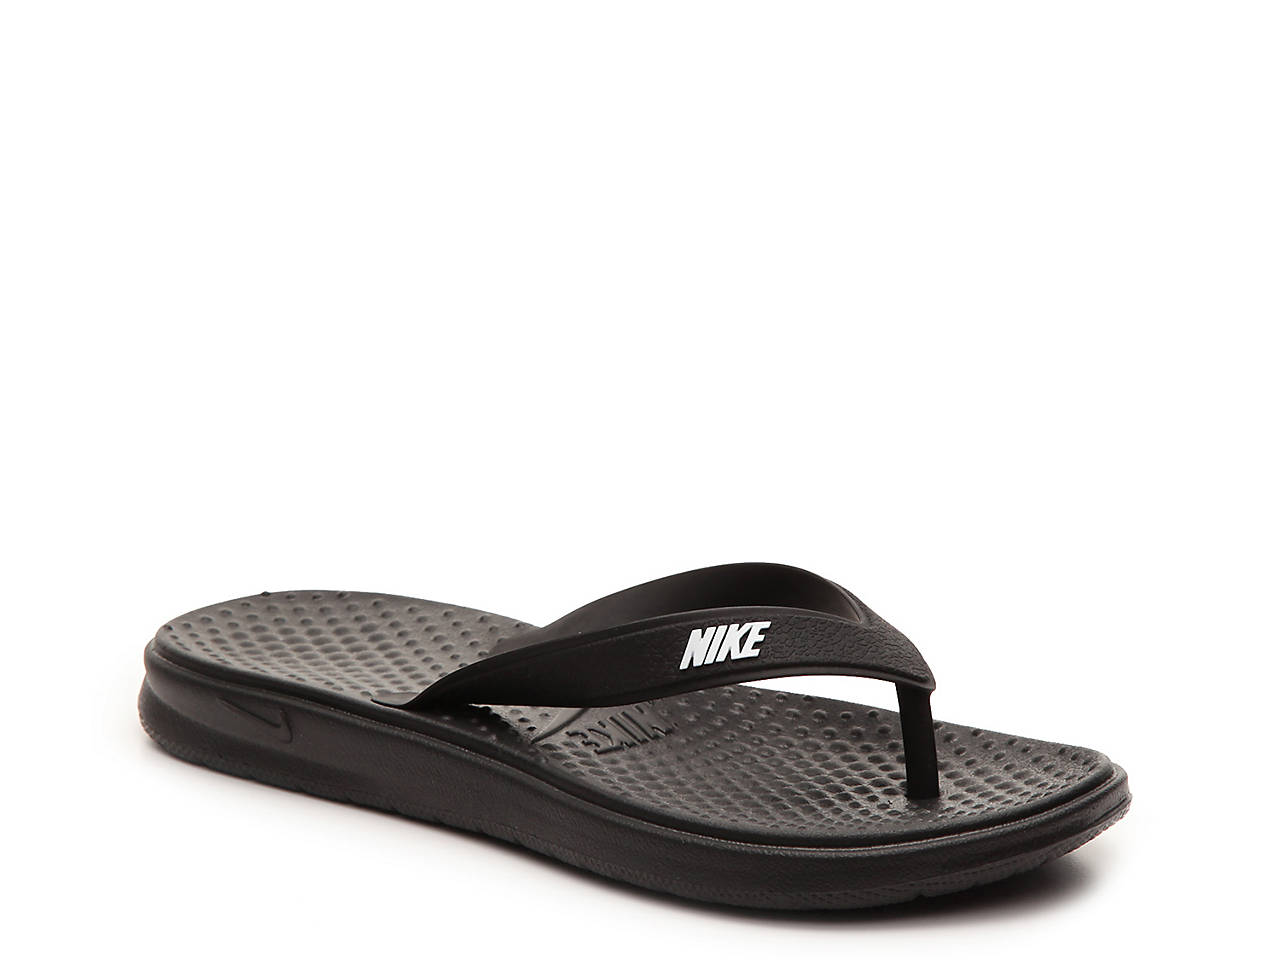 dab9a2098 Nike Solay Flip Flop Women s Shoes